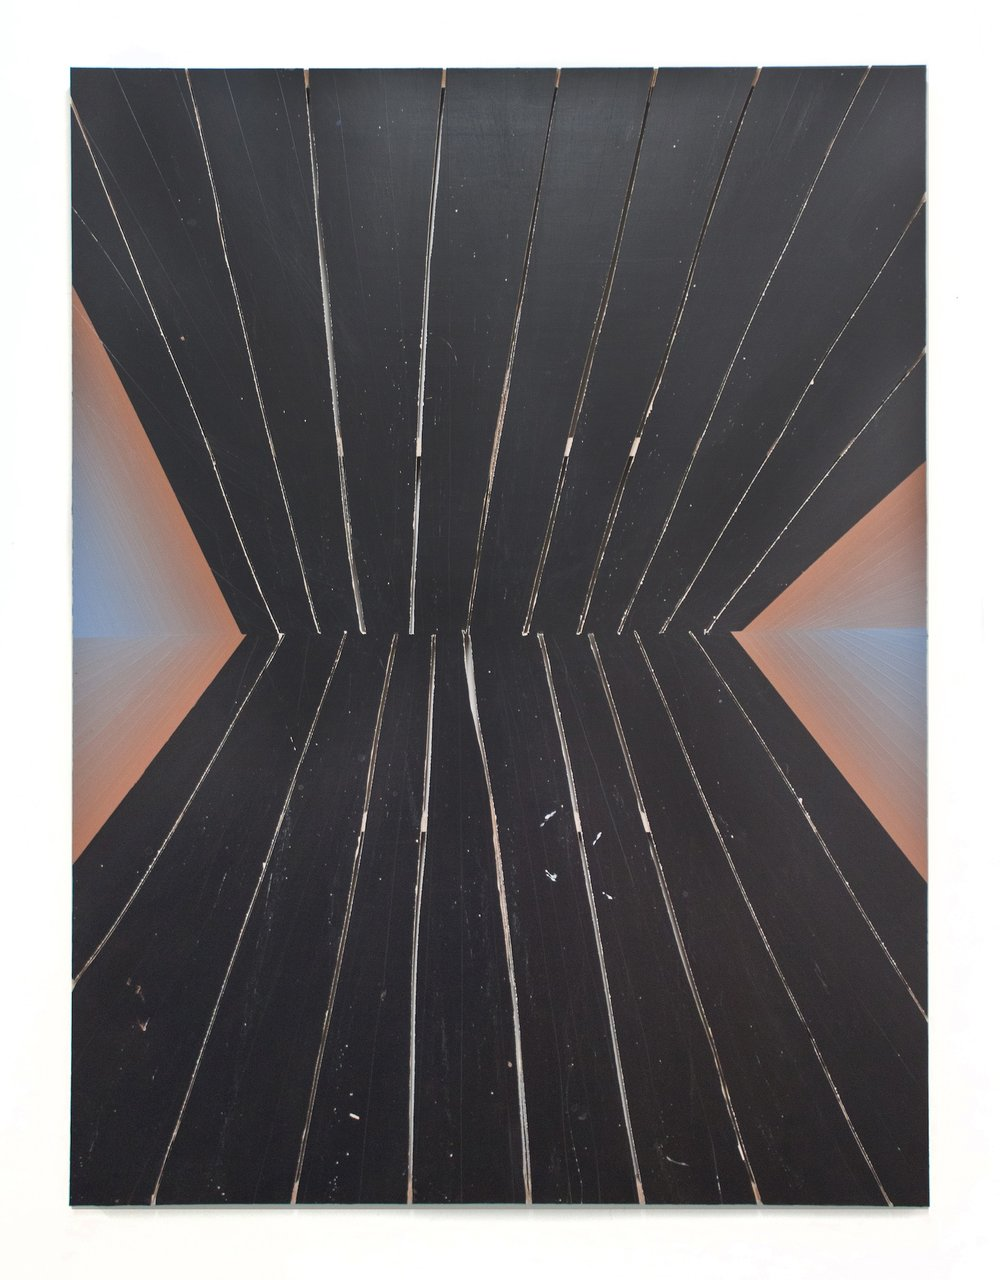 Untitled  Acrylic on panel  64 x 48 in  2012